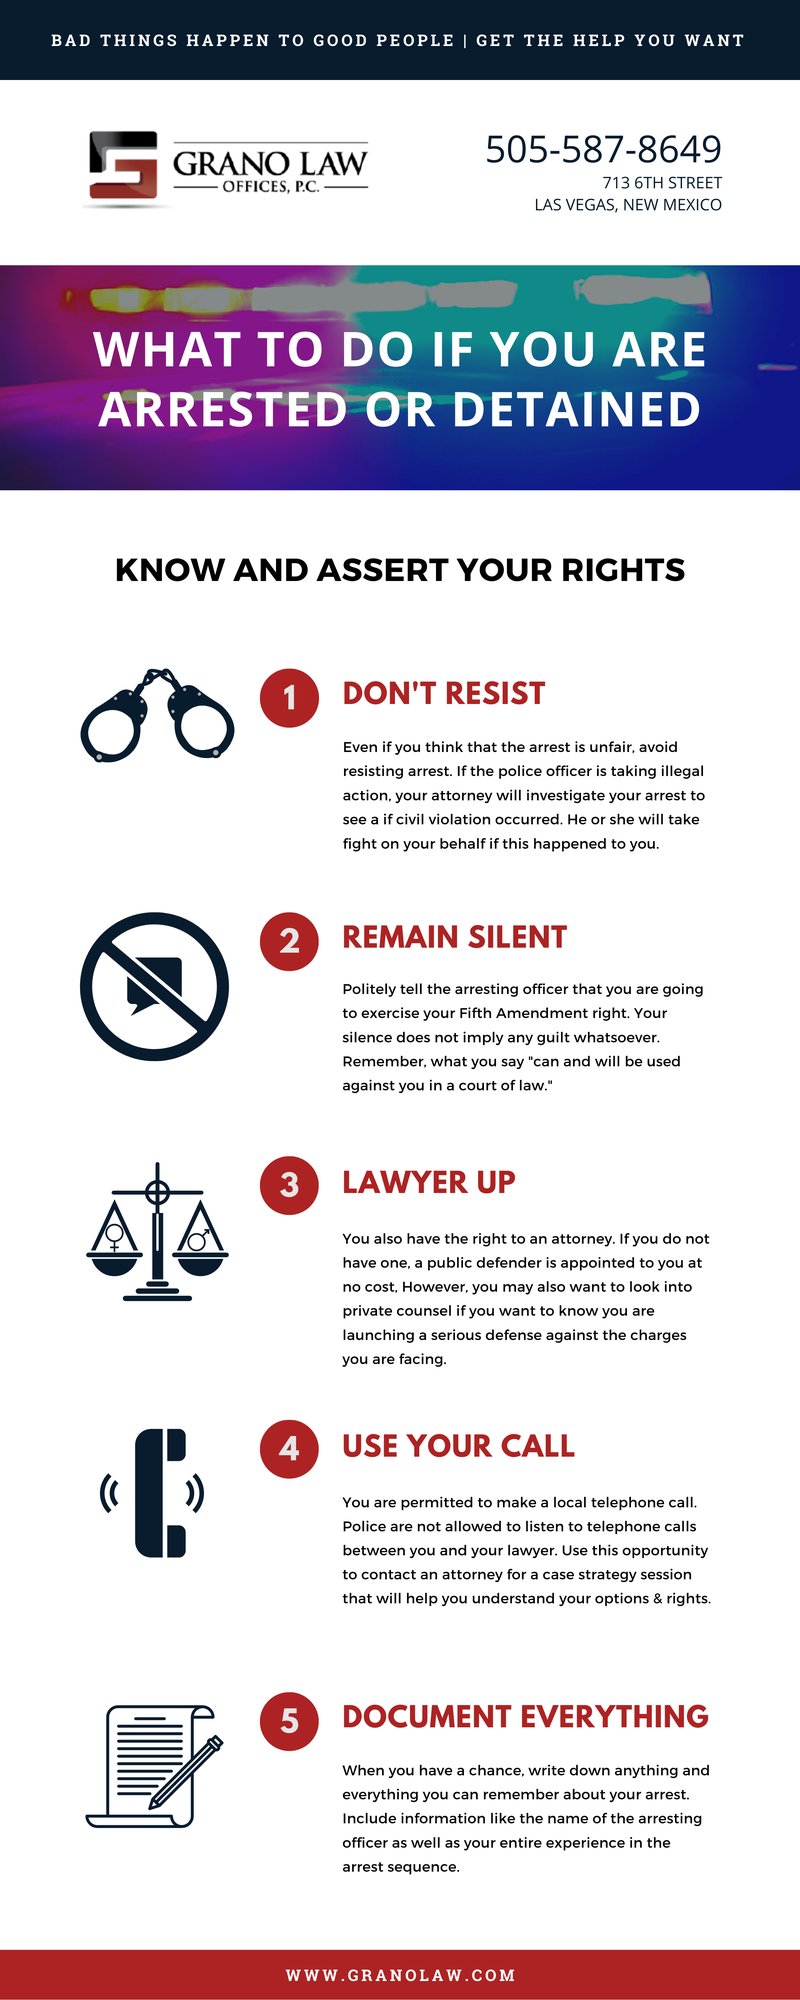 [INFOGRAPHIC] What to Do If You Are Arrested